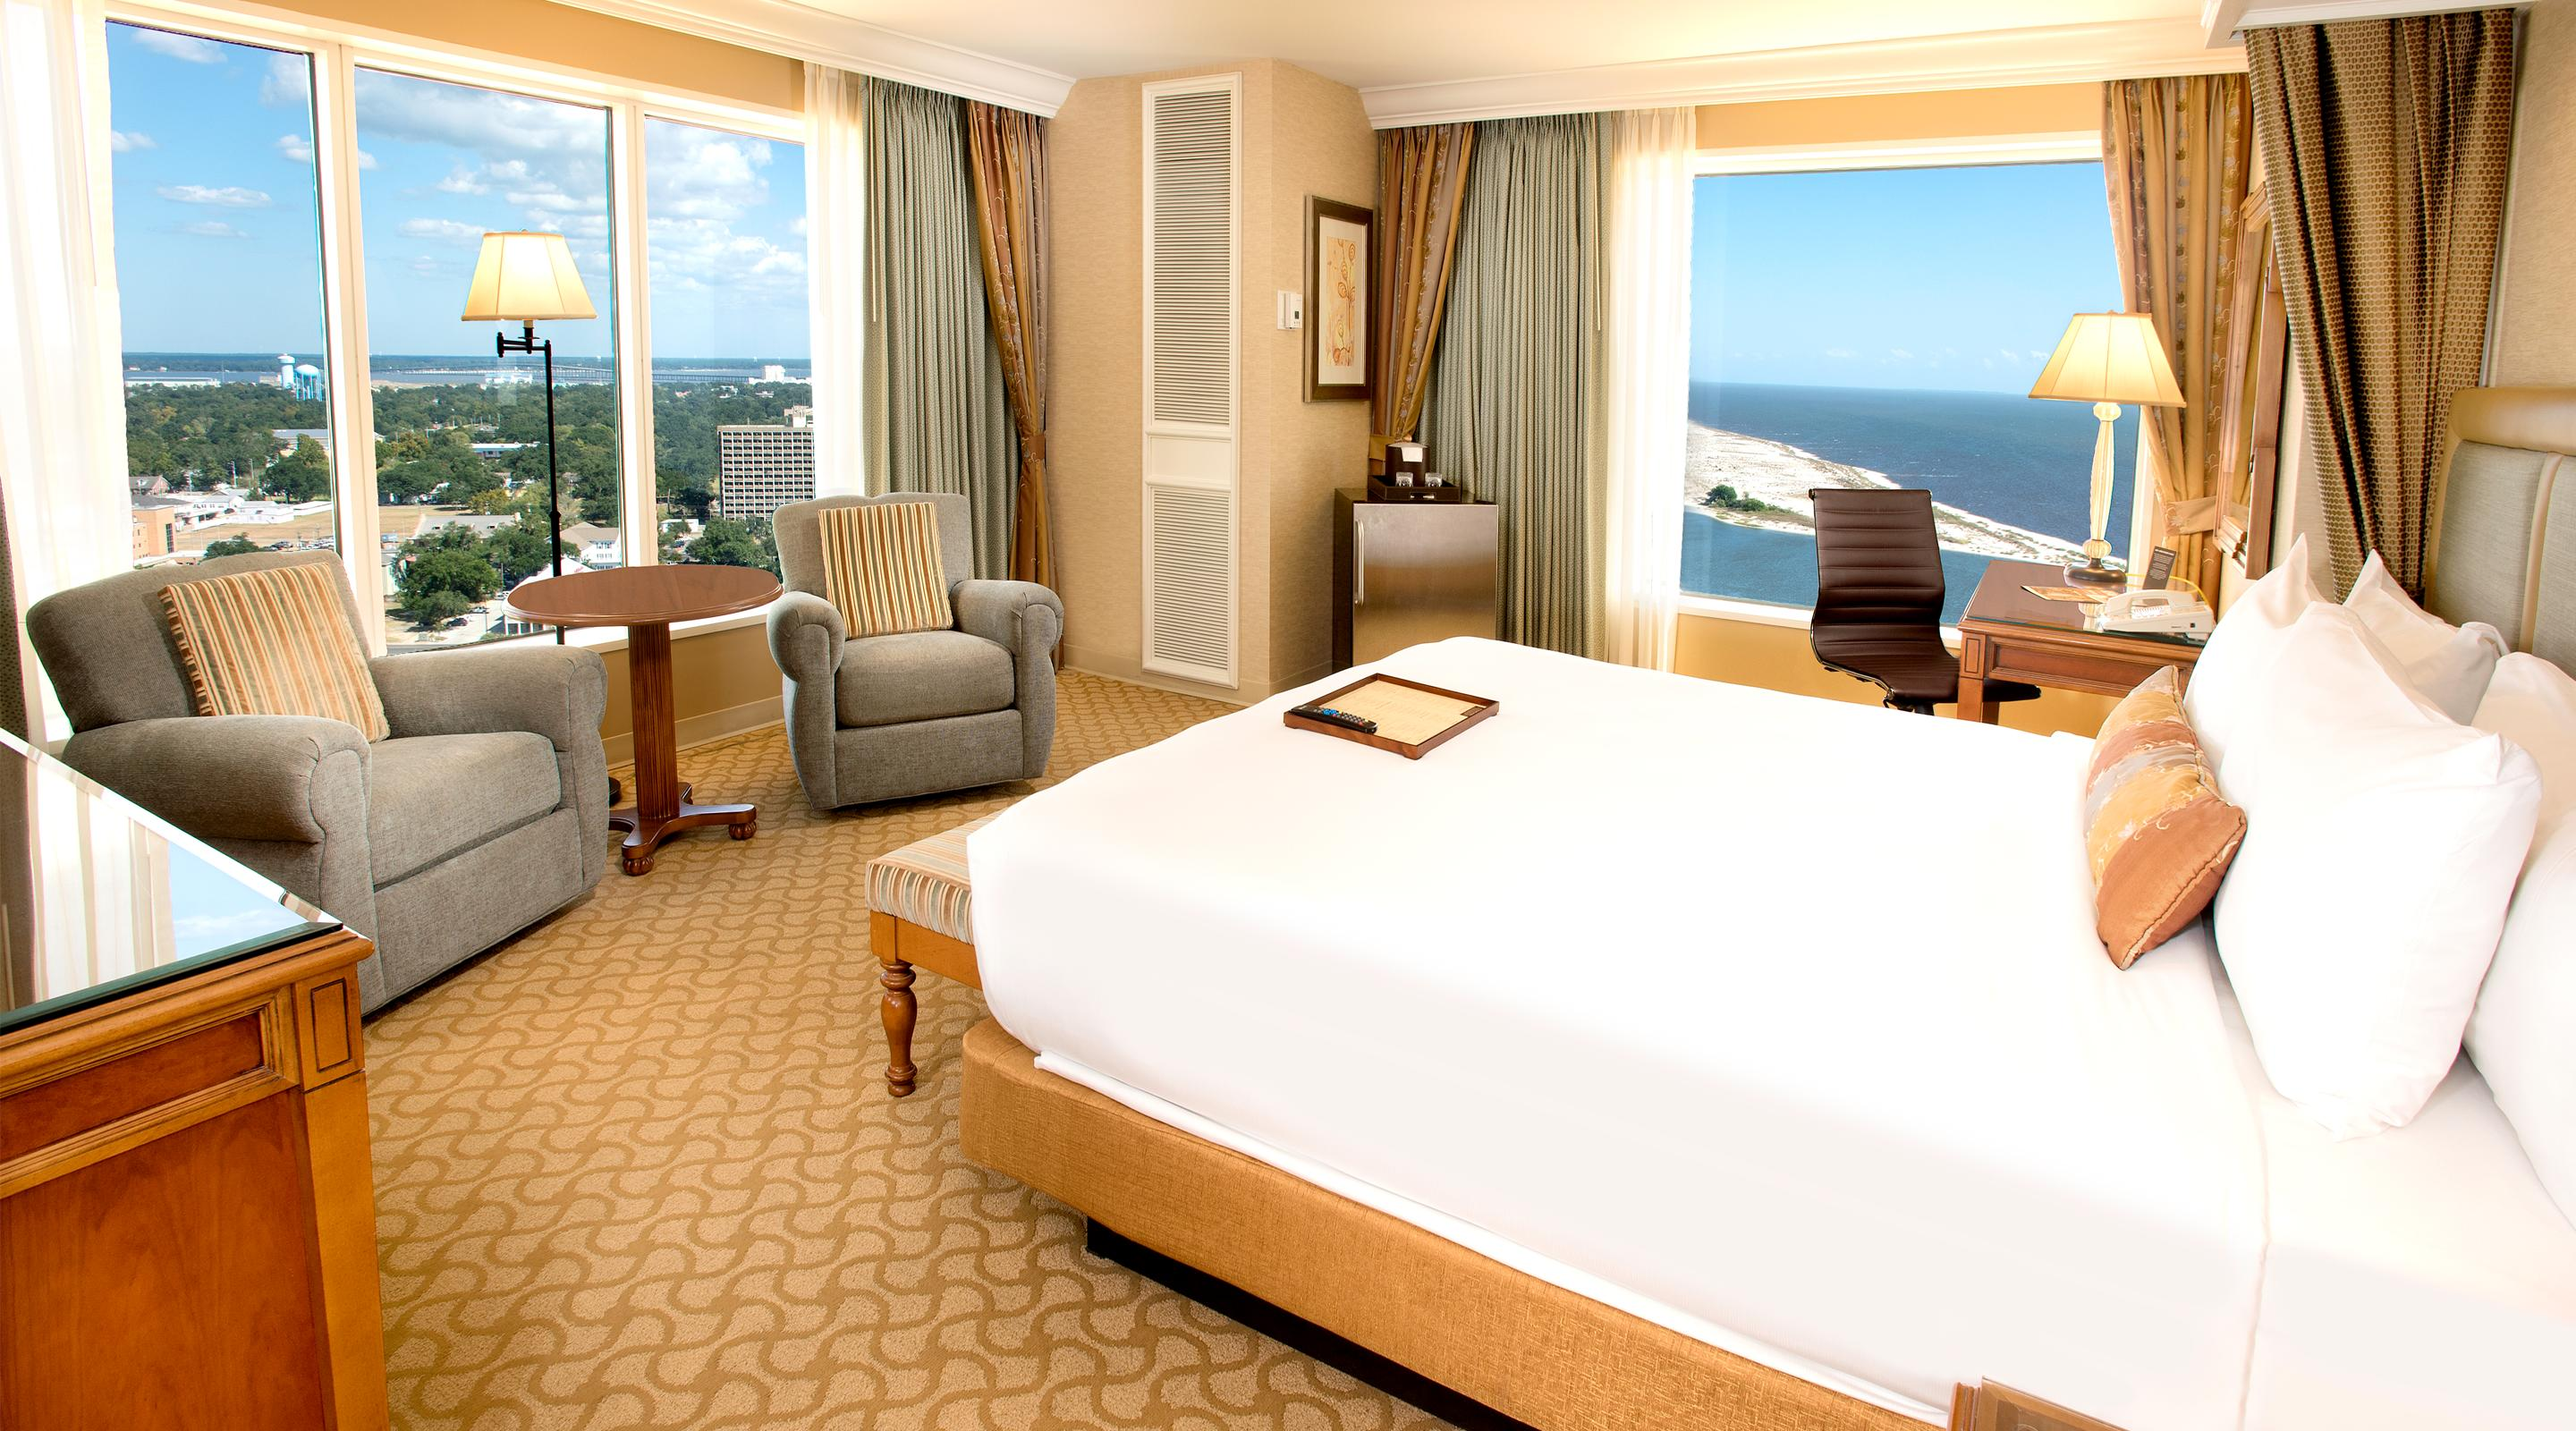 Beau Rivage Panoramic King room.